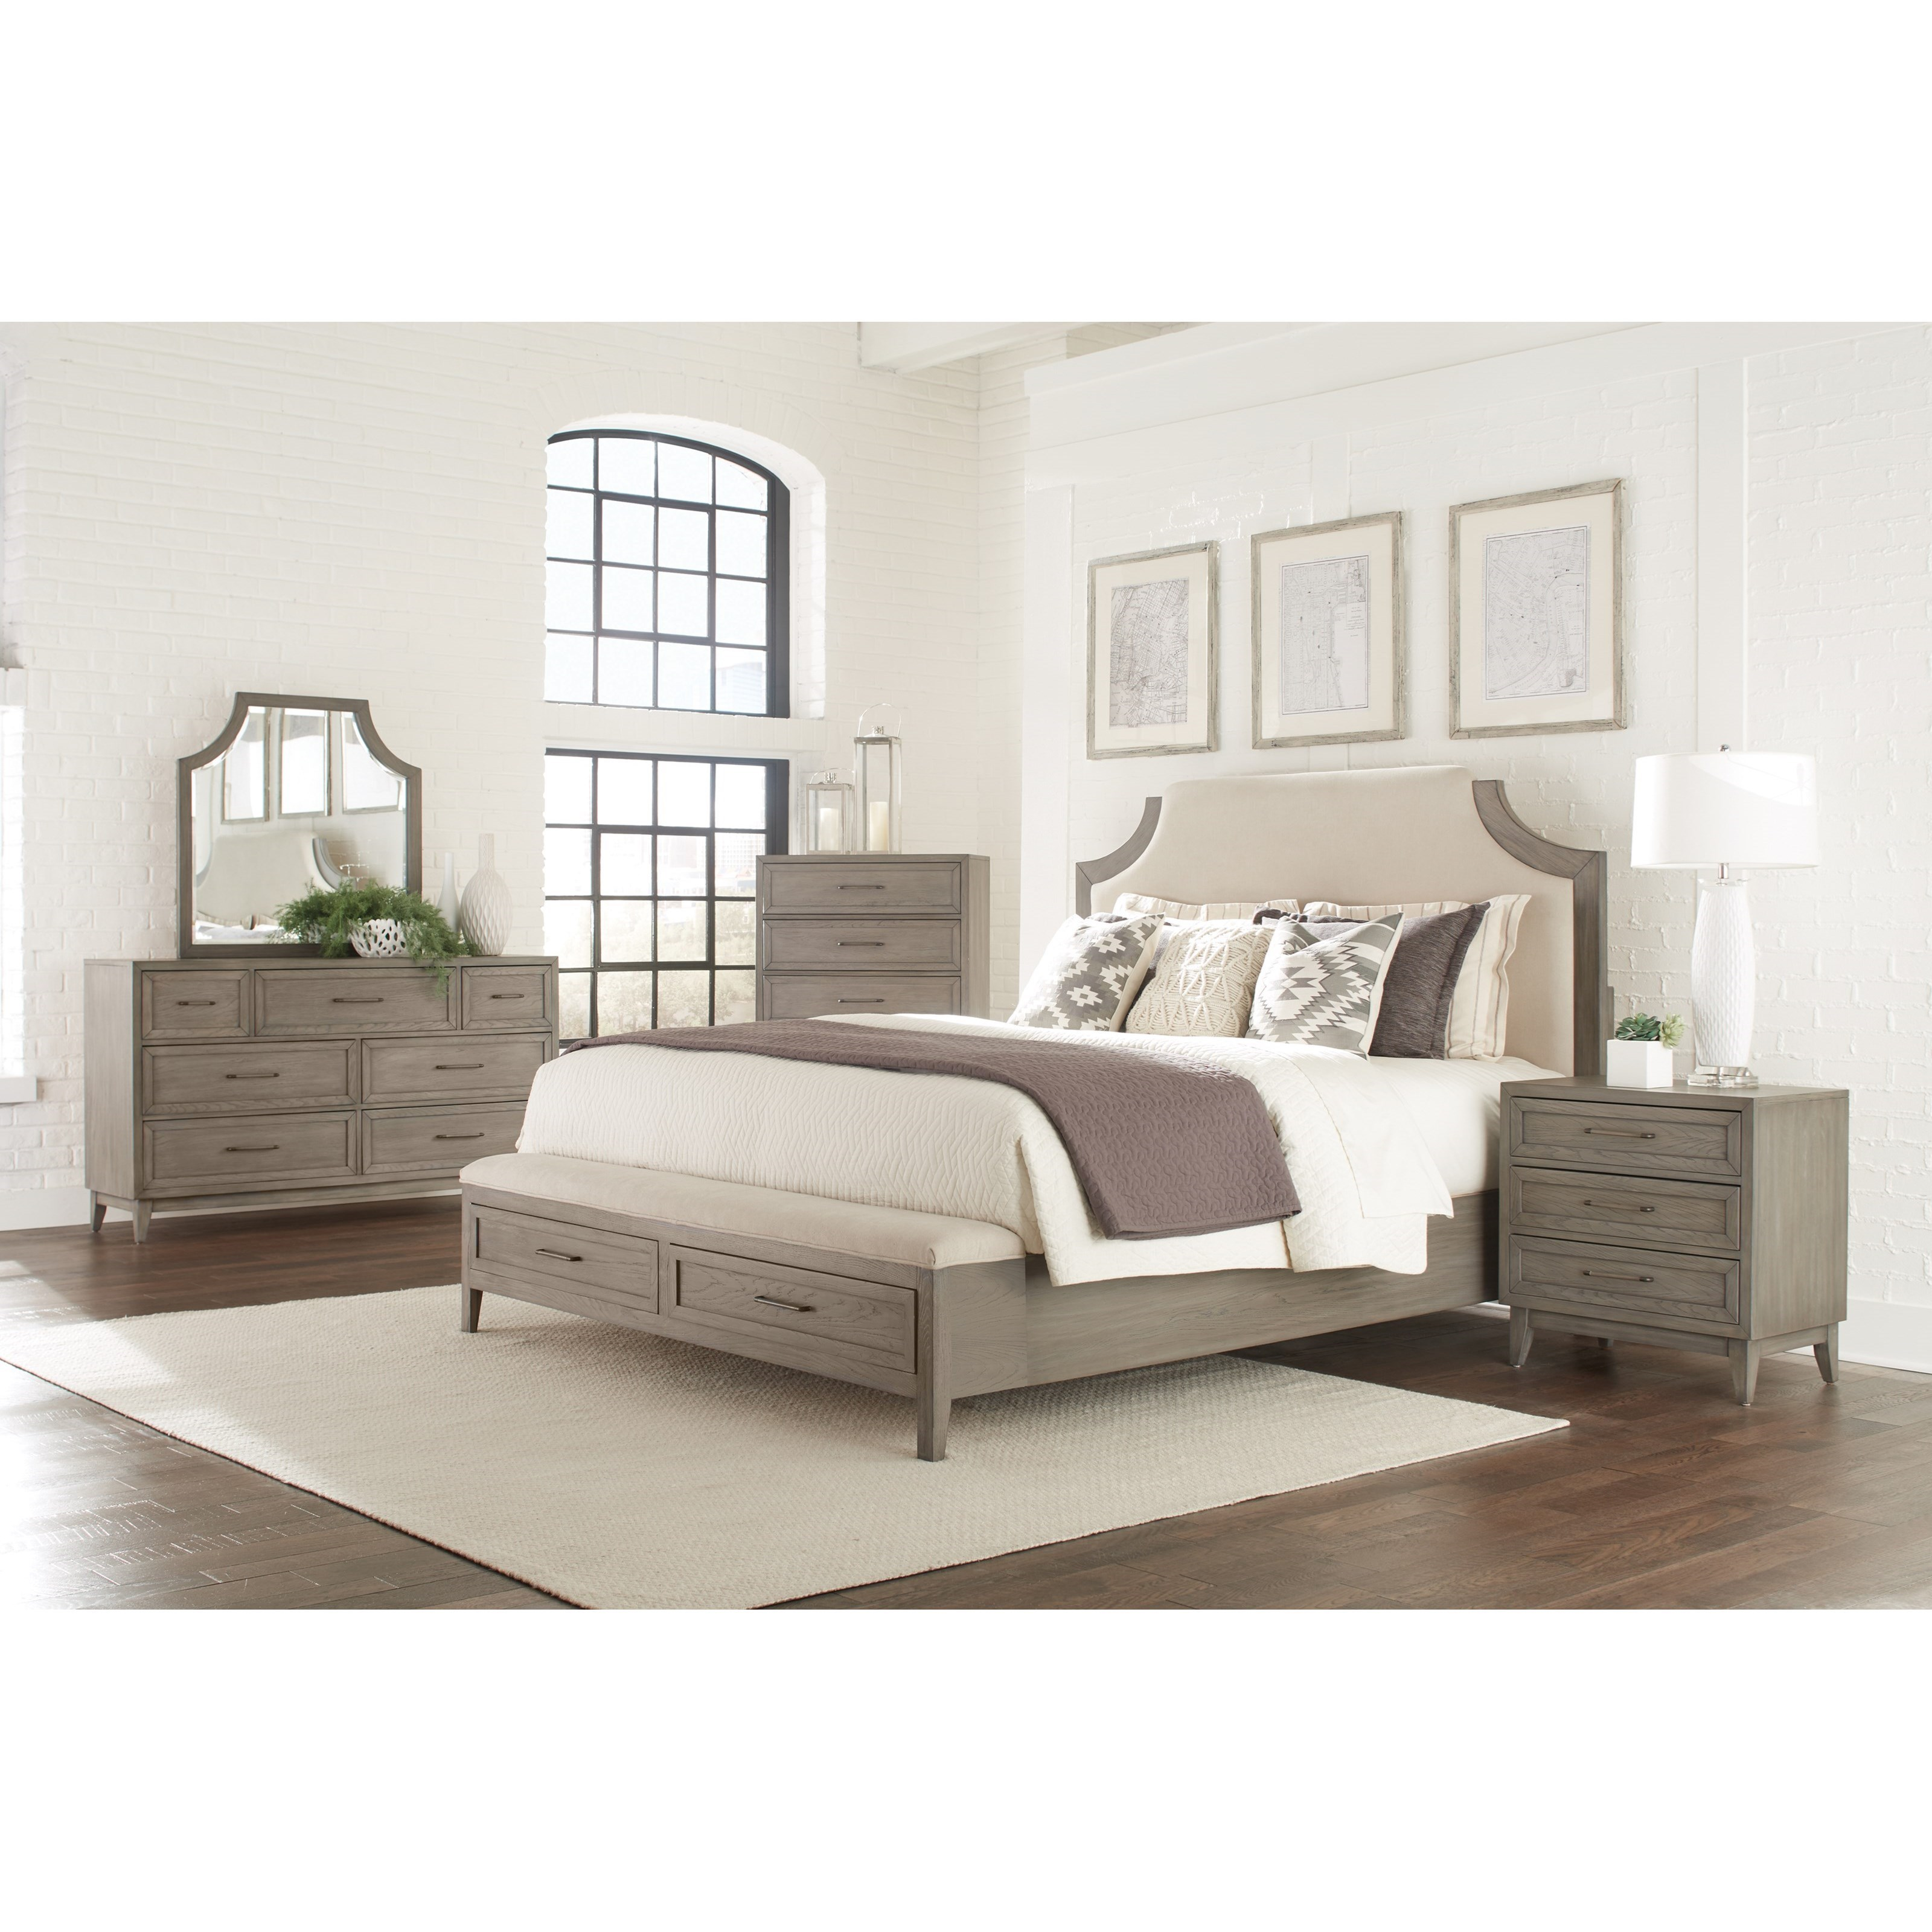 Riverside Furniture Vogue Queen Upholstered Bed With Storage Bench Footboard Wayside Furniture Panel Beds